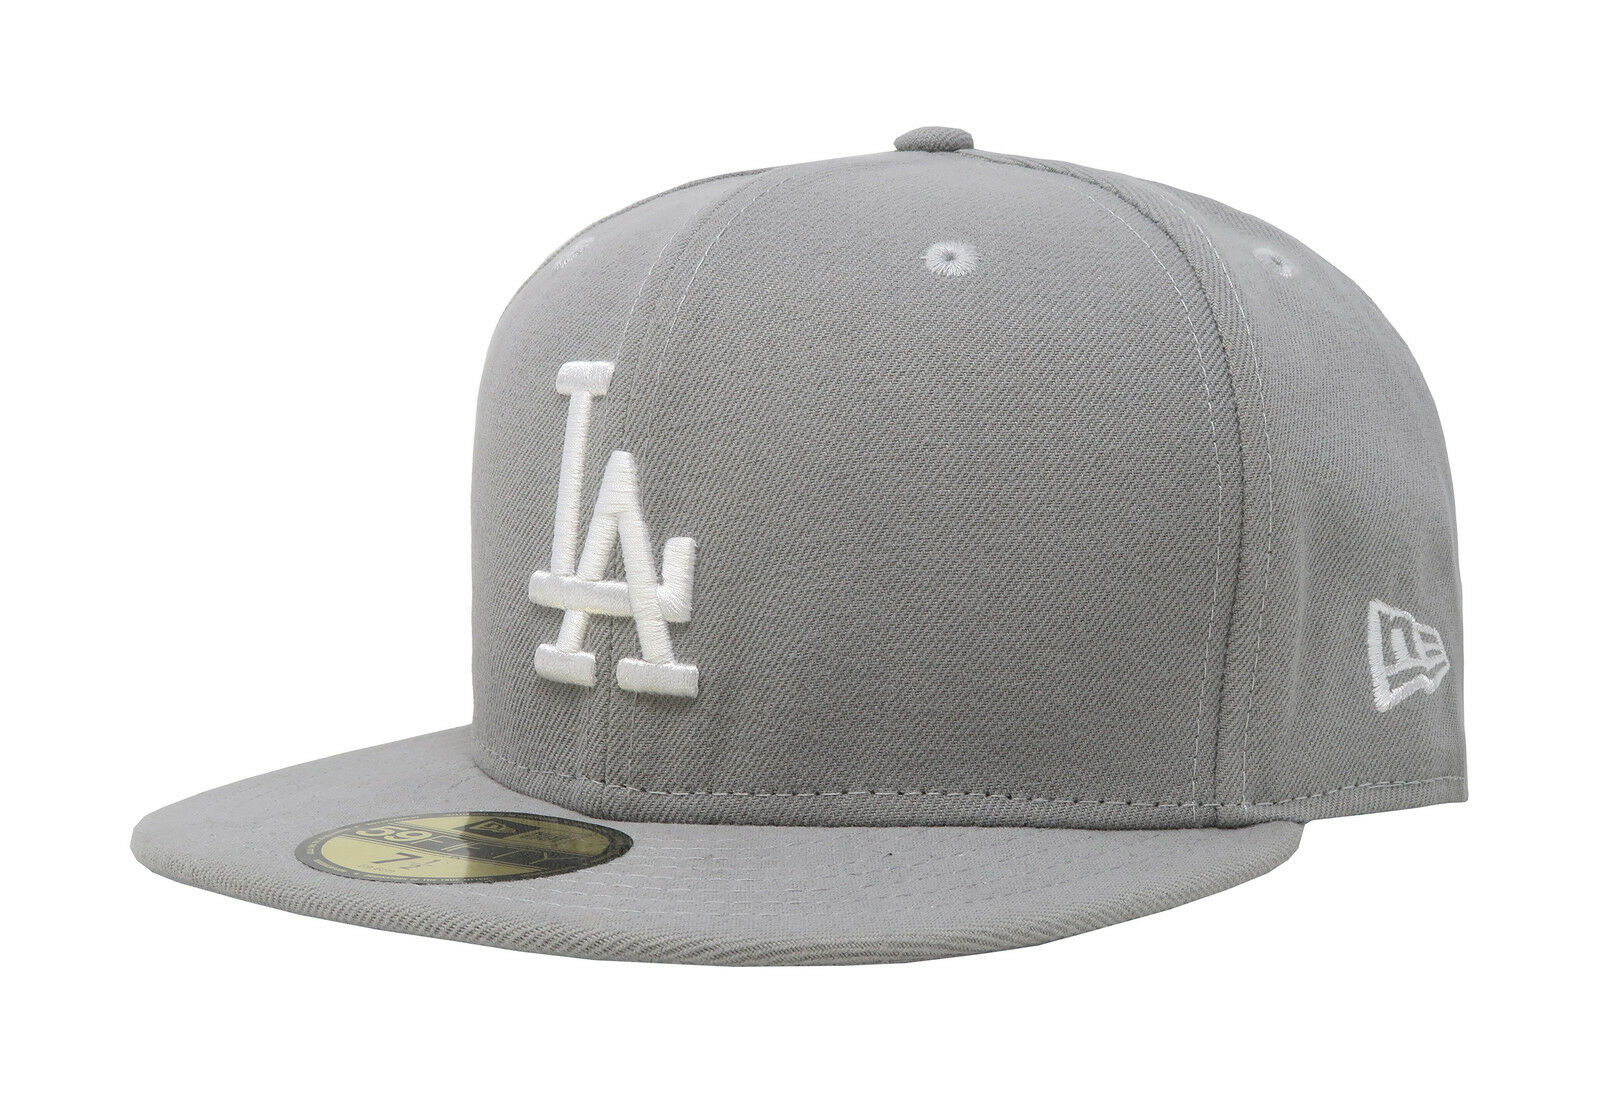 New Era 59Fifty Dodgers Hat MLB Los Angeles Dodgers 59Fifty Mens Light Gray 5950 Fitted Cap 725448